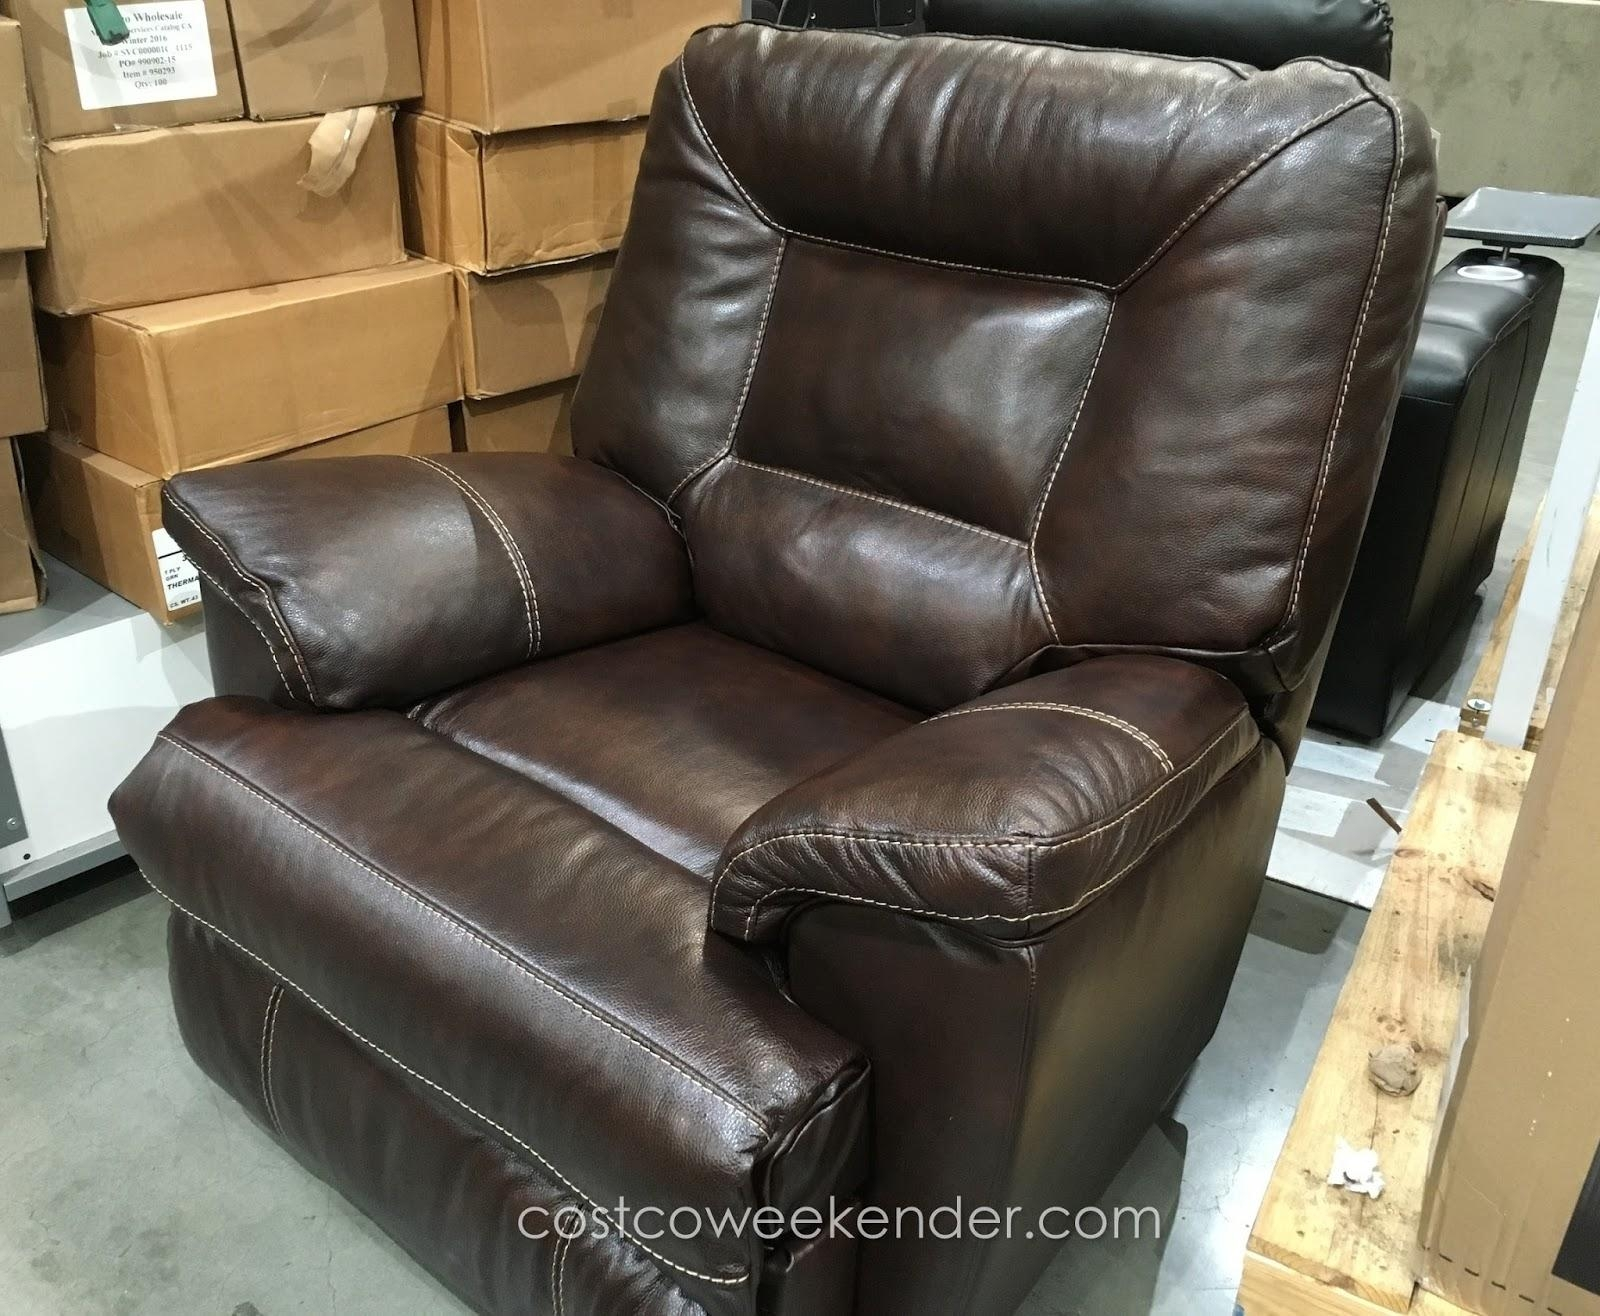 Furniture & Sofa: Enjoy Your Holiday With Costco Home Theater Inside Berkline Sofa Recliner (Image 12 of 20)